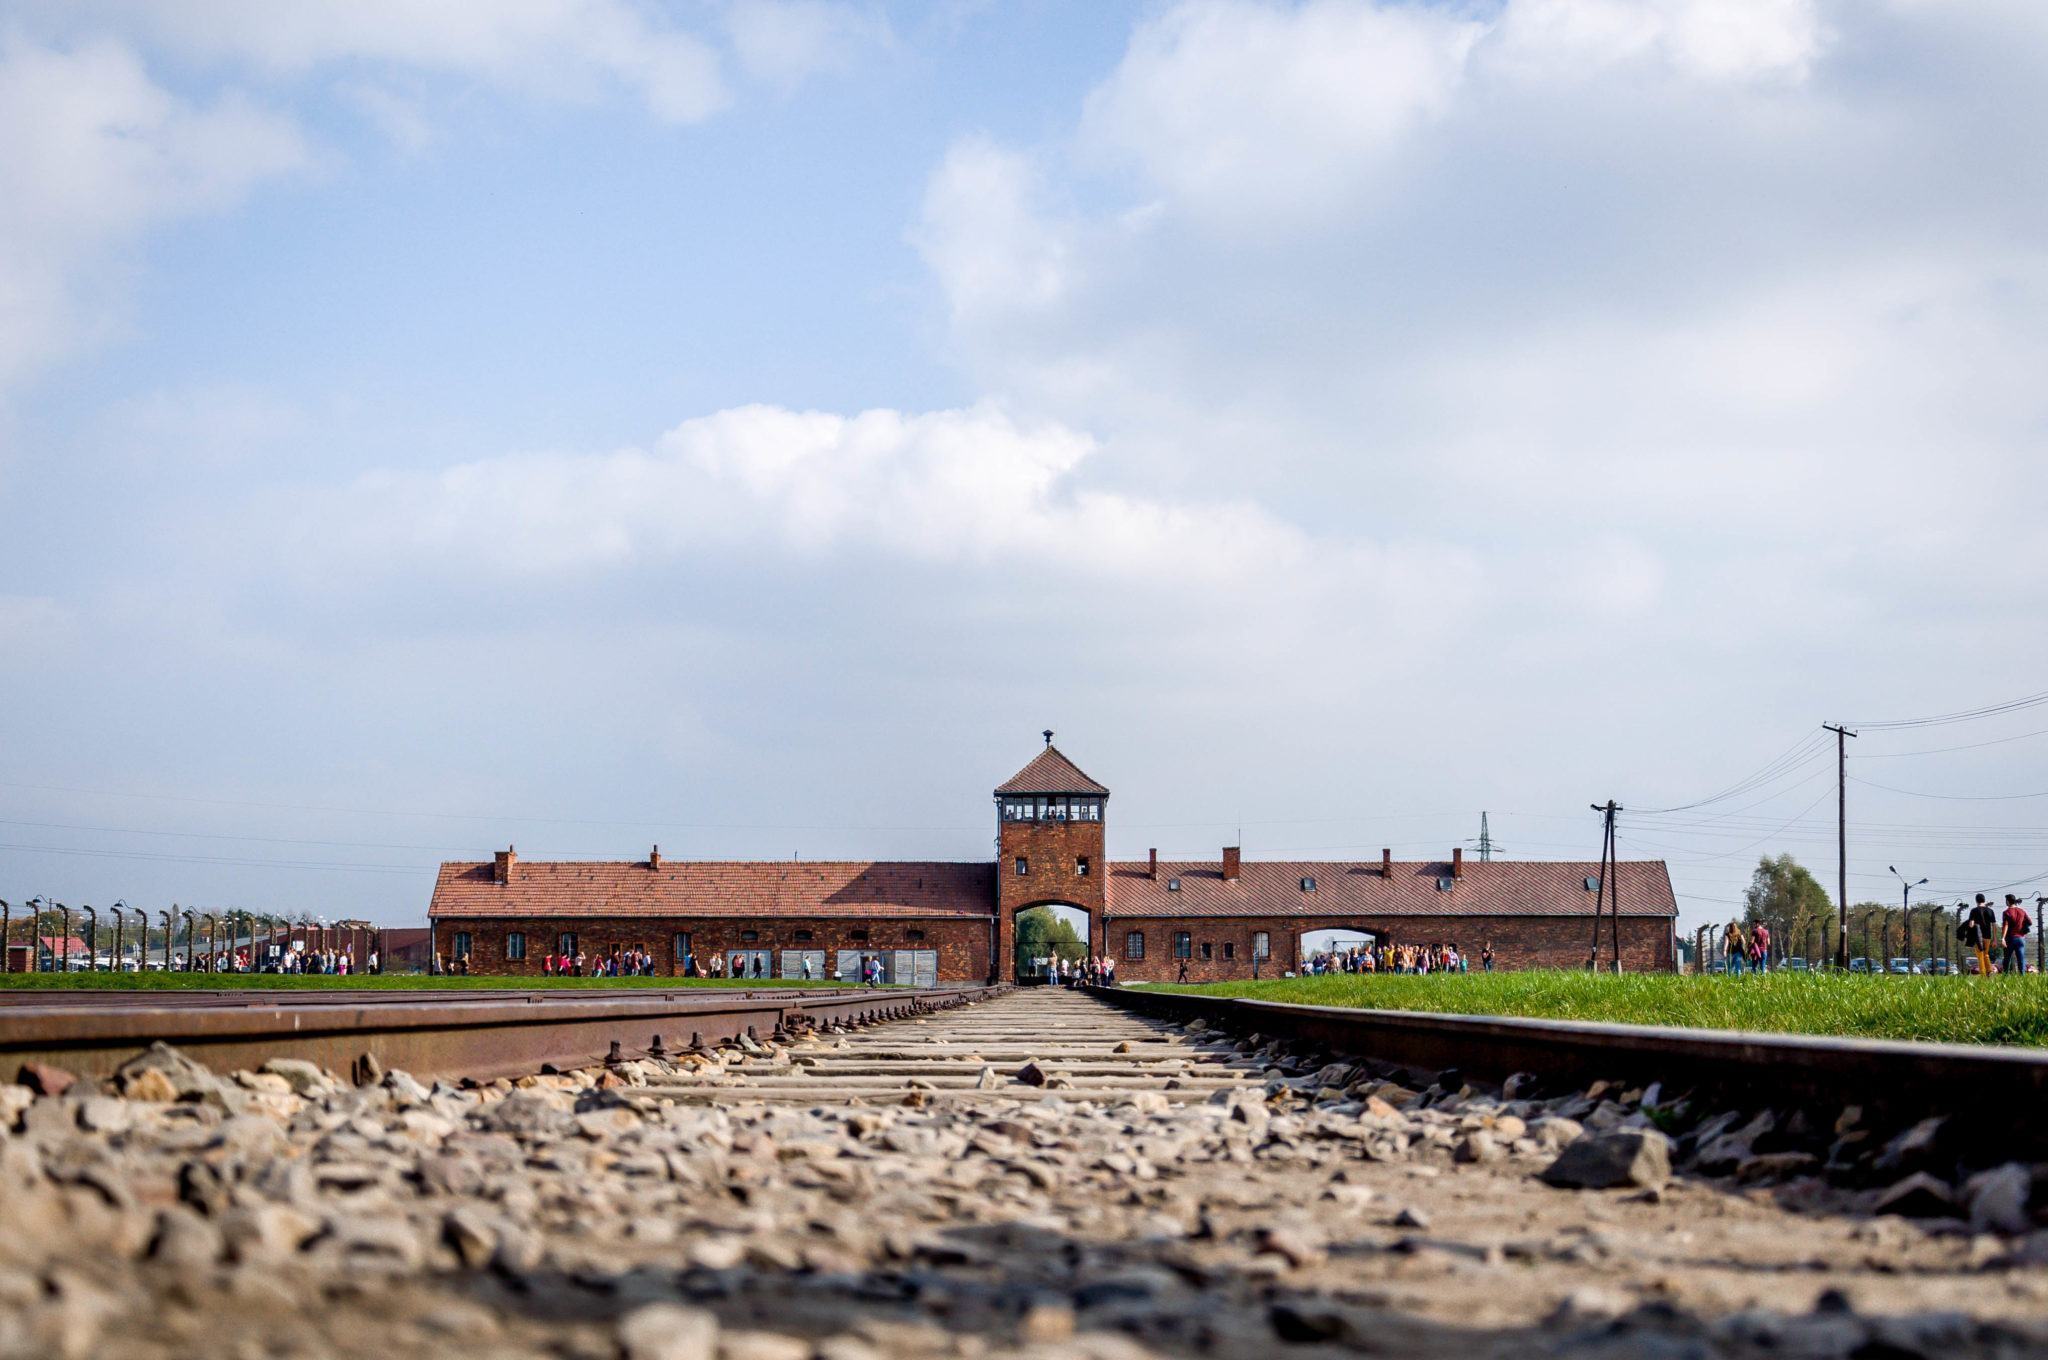 The arrival platforms at the Auschwitz-Birkenau concentration and extermination camp